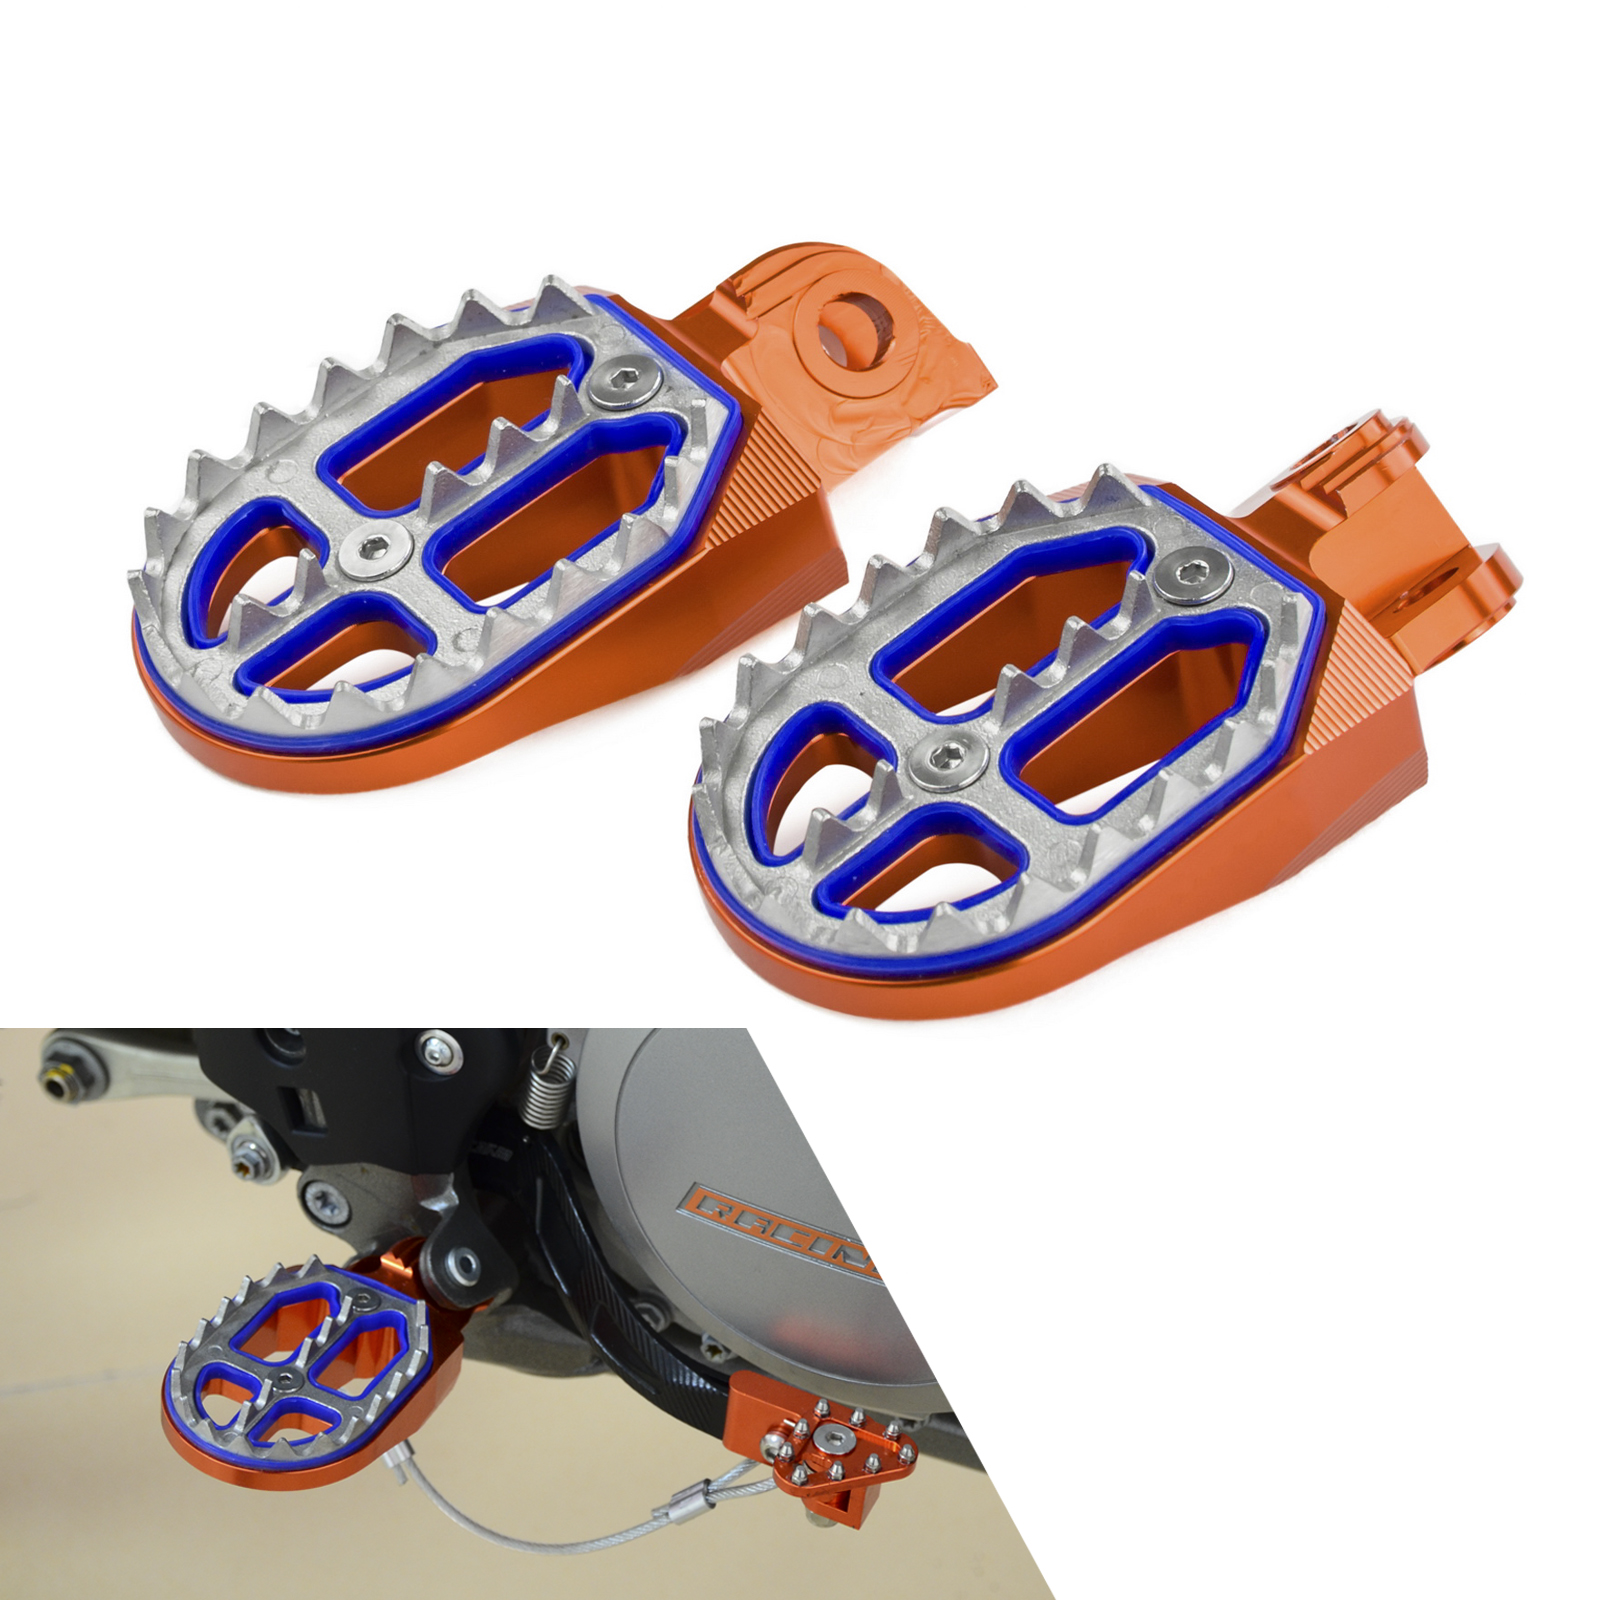 Racing Foot Pegs Rests Pedals For KTM EXC EXCF XC XCF XCW SX SXF 65 85